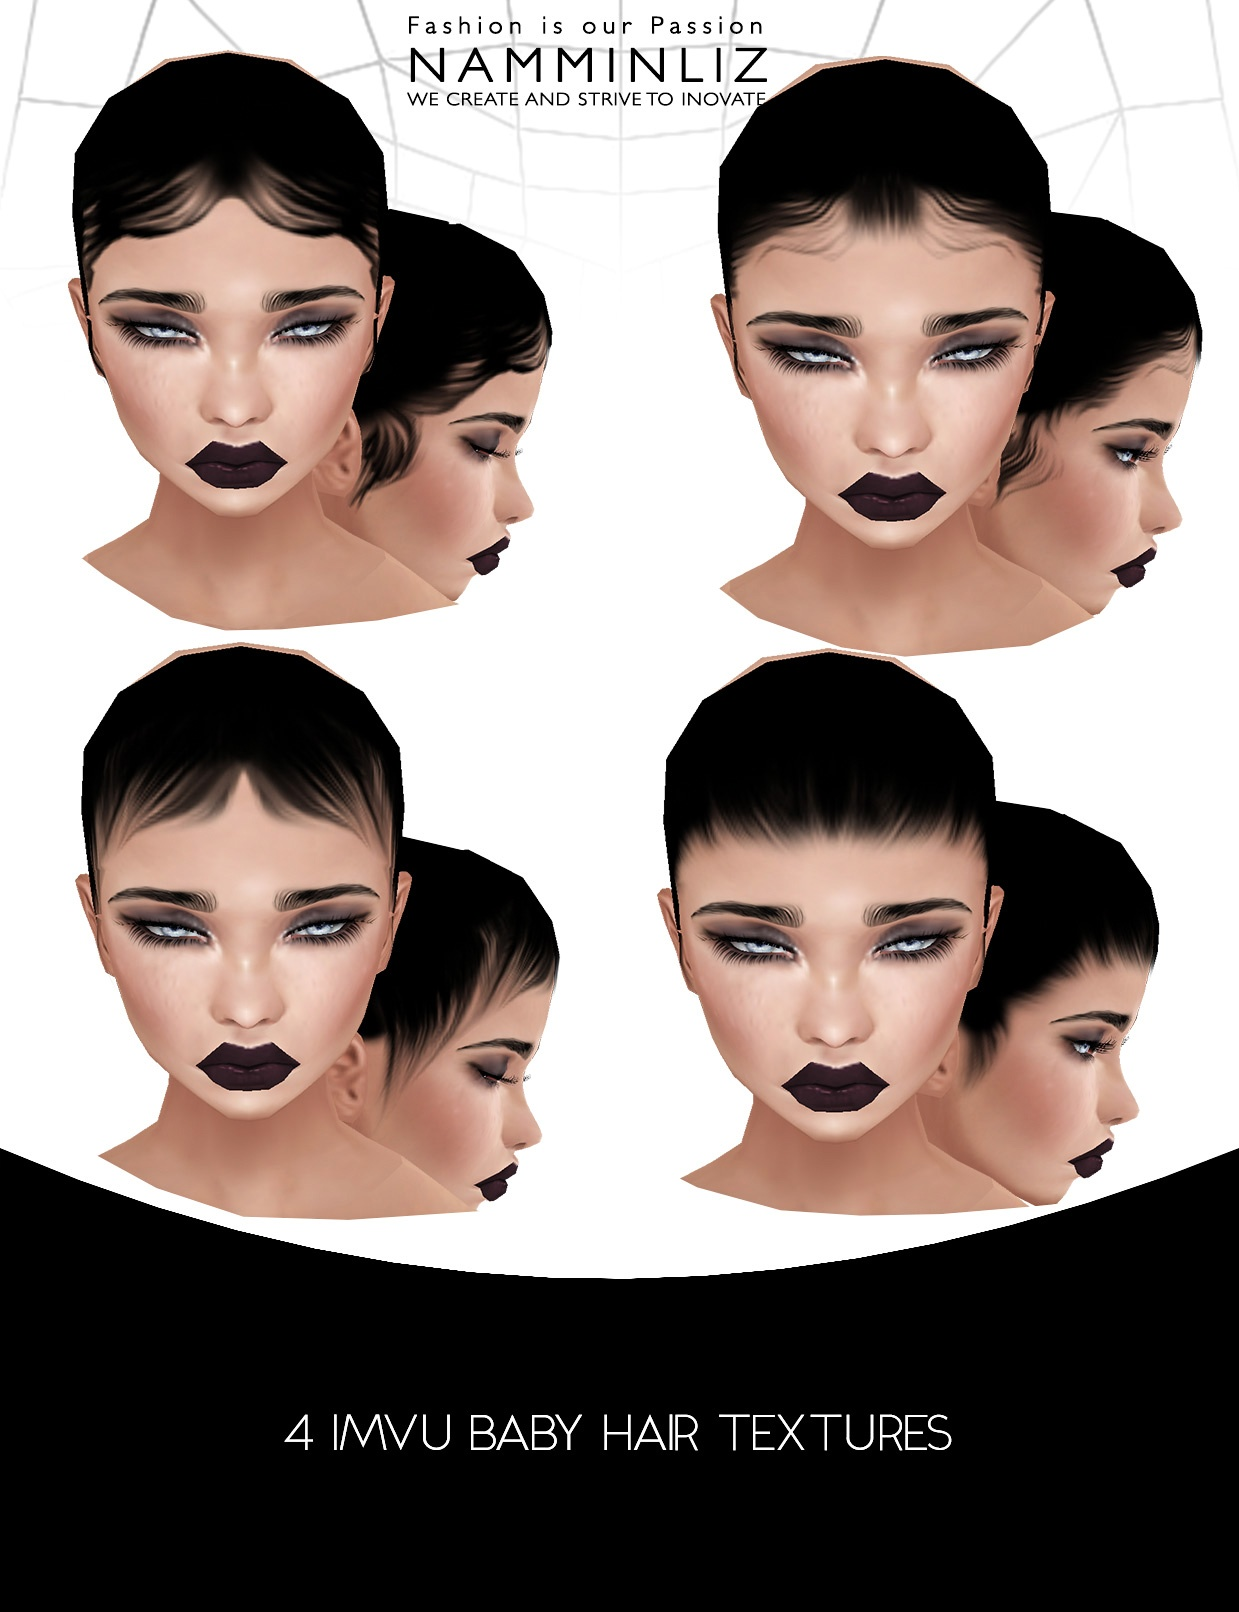 New Baby hair 2017 HD Front Female • 4 Baby hair Opacity • 7 Hair Textures